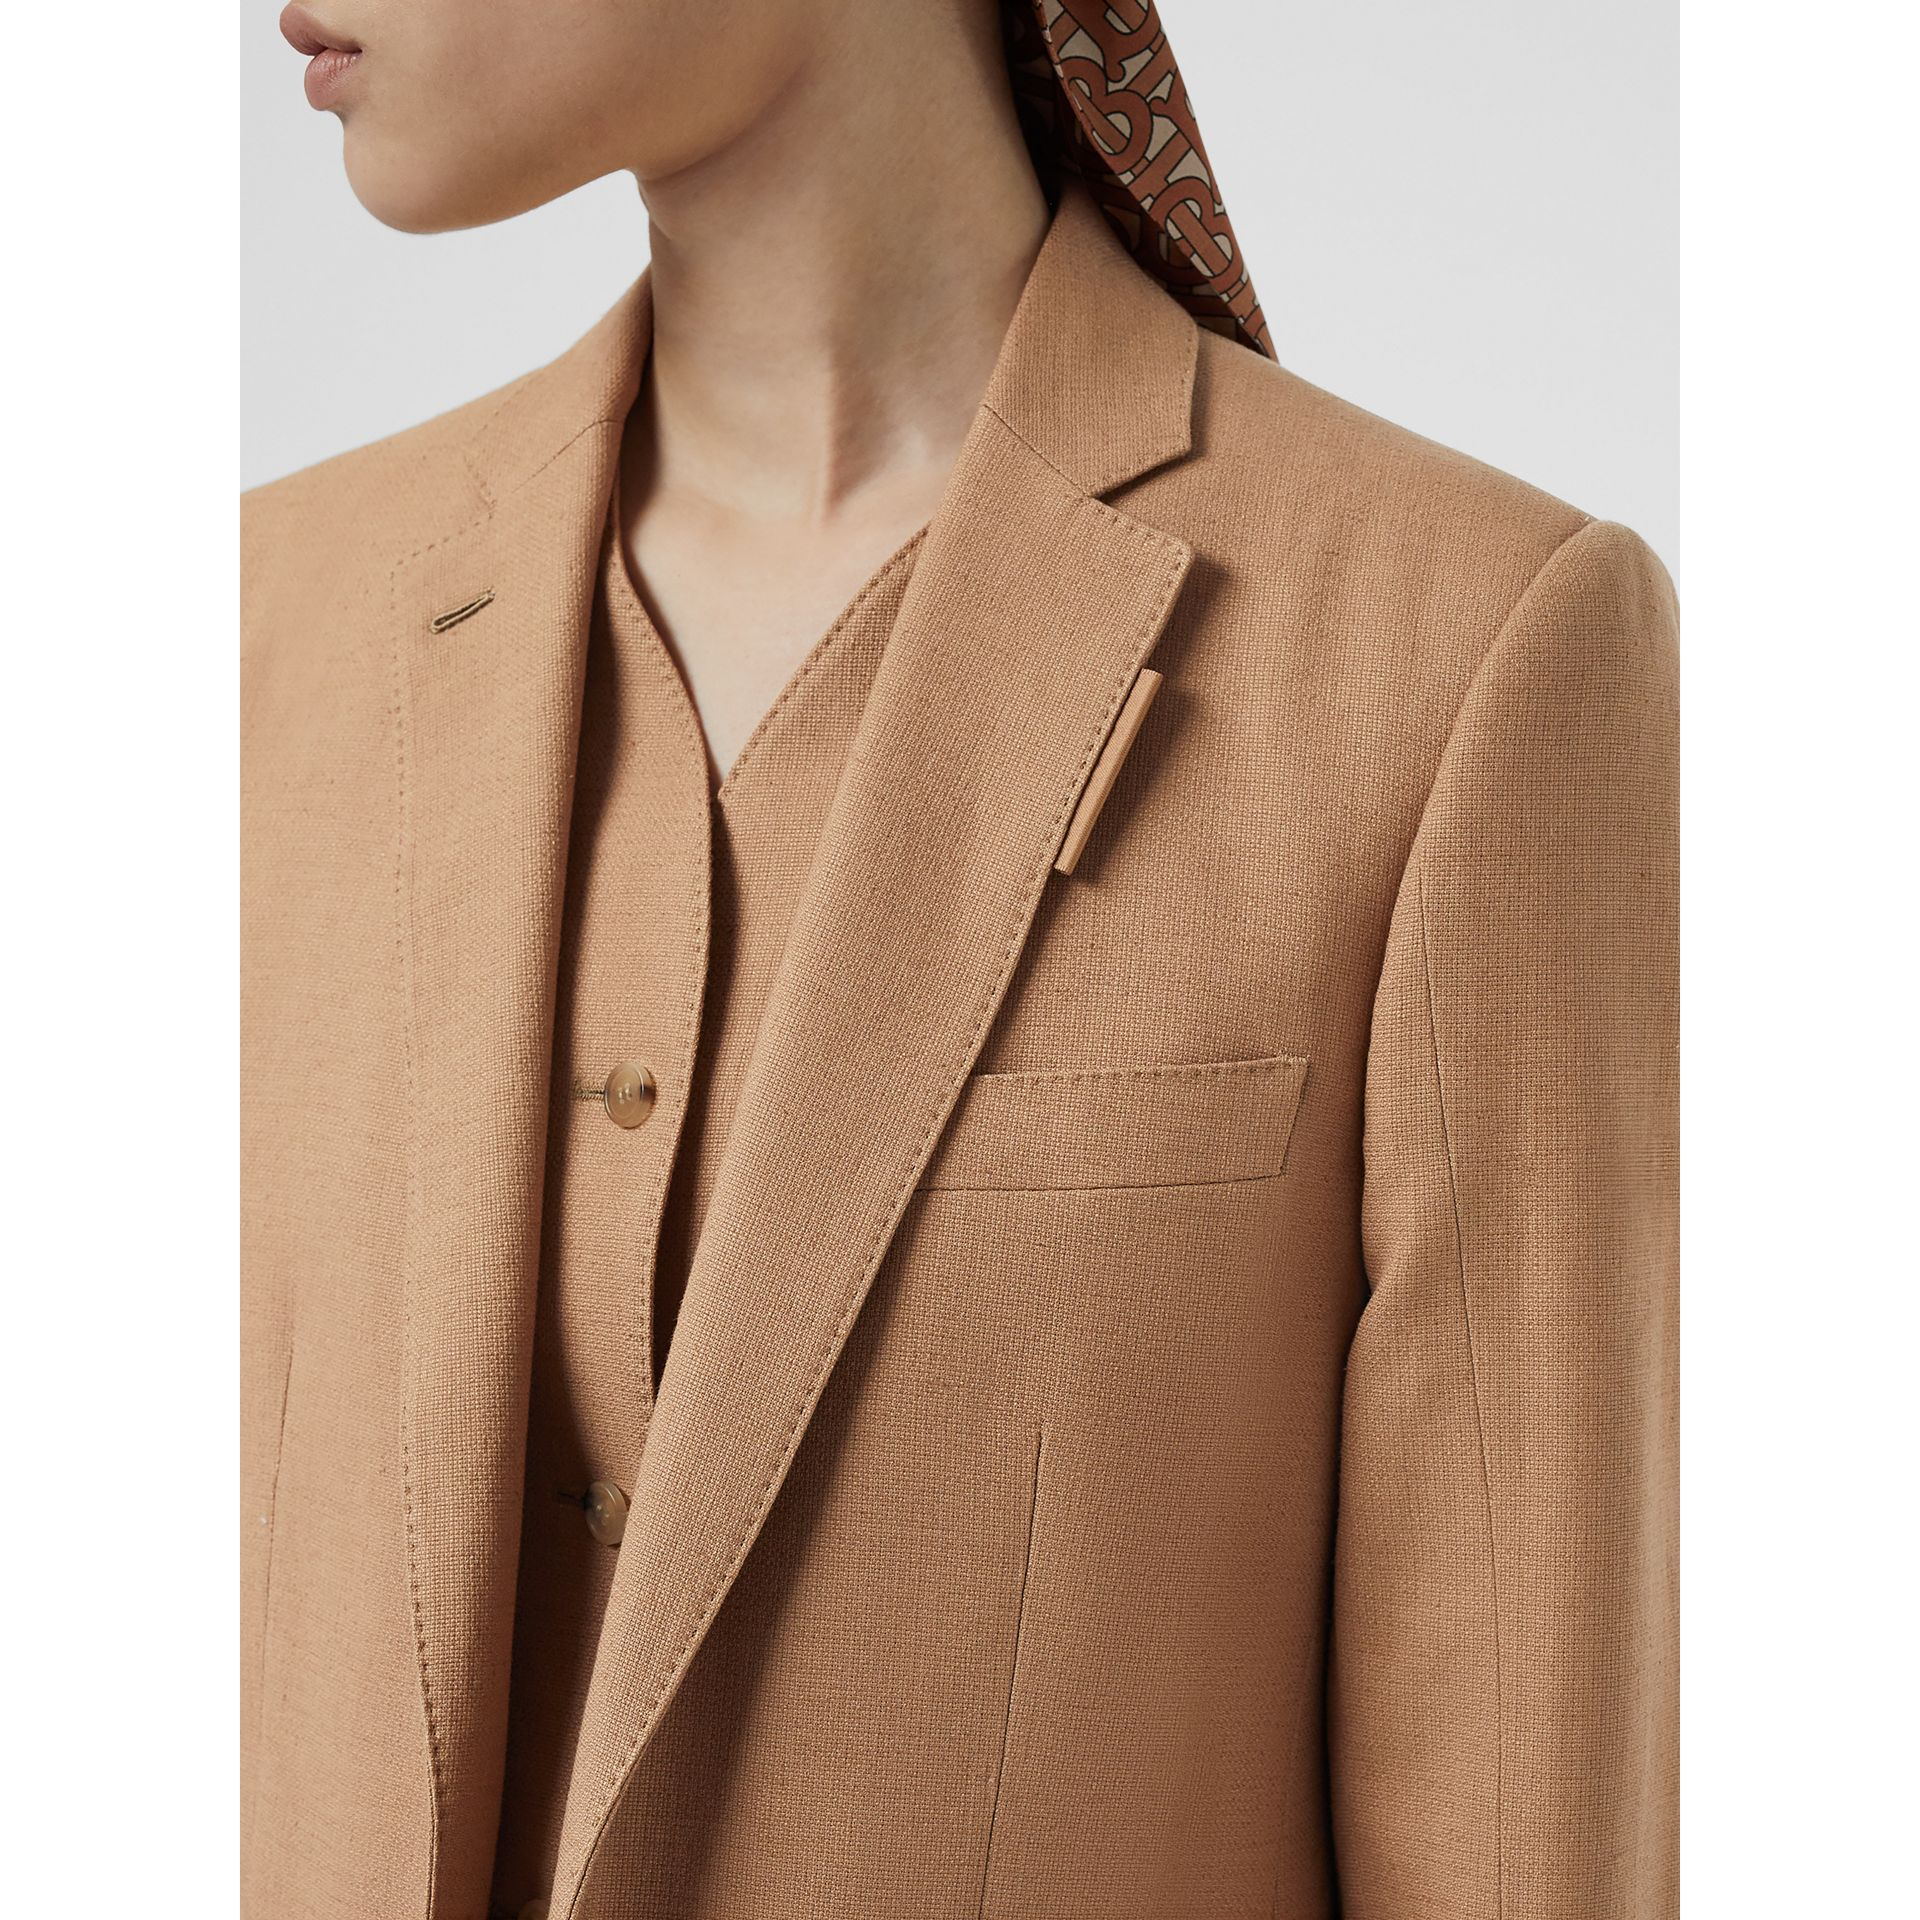 Vest Detail Cotton Linen Tailored Jacket in Ceramic Brown - Women | Burberry United States - gallery image 1